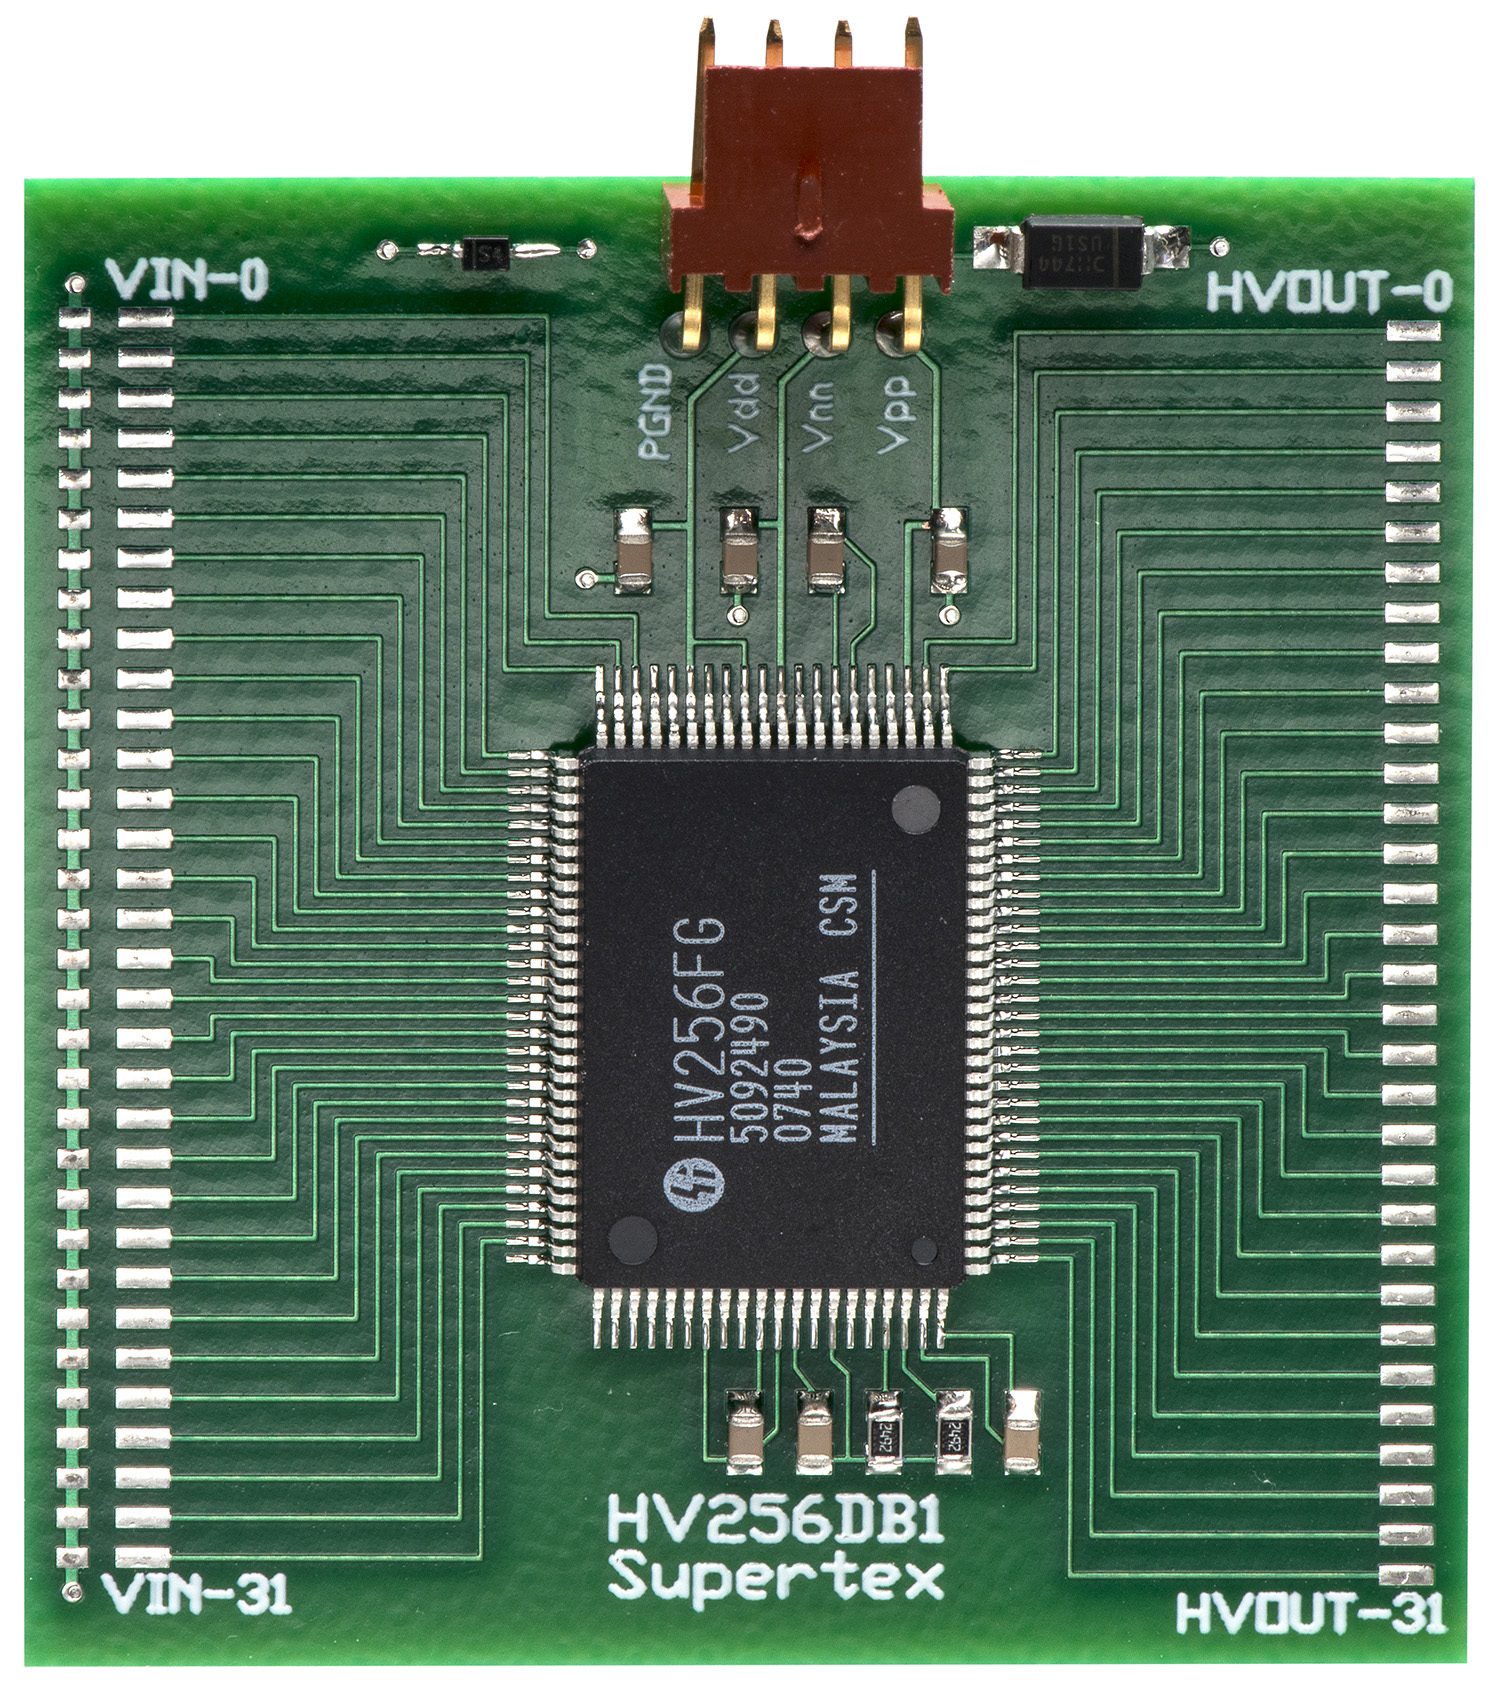 Development Tools High Voltage Power Mosfet Could Be Used Just As Easily Array With A Nominal Gain Of 72v V The Purpose Hv256db1 Is To Provide Means Evaluate Hv256fg G Device Supply